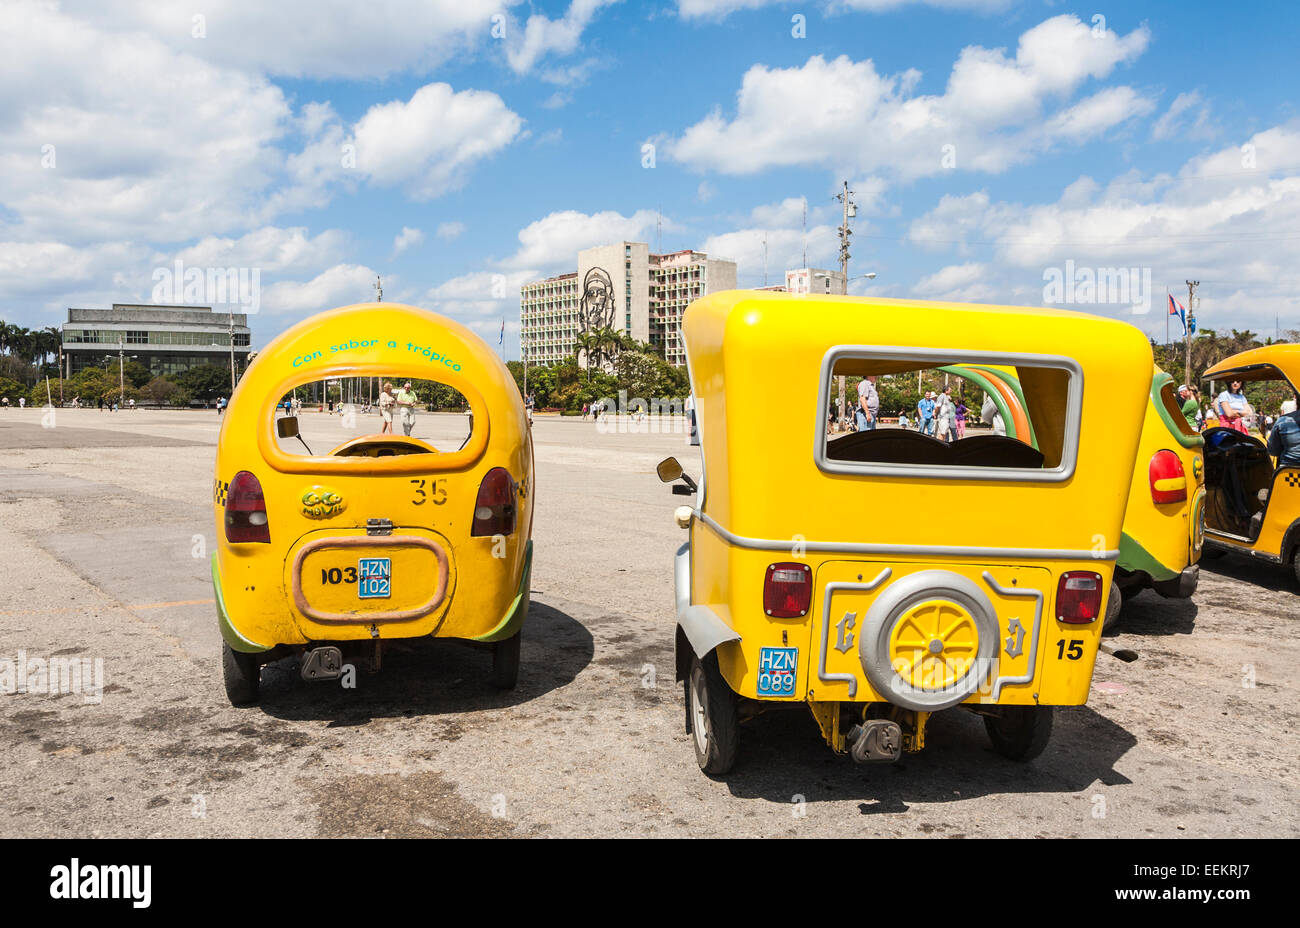 Sightseeing transport: Yellow coco taxis waiting at the Ministry of Interior building with image of Che Guevara, - Stock Image